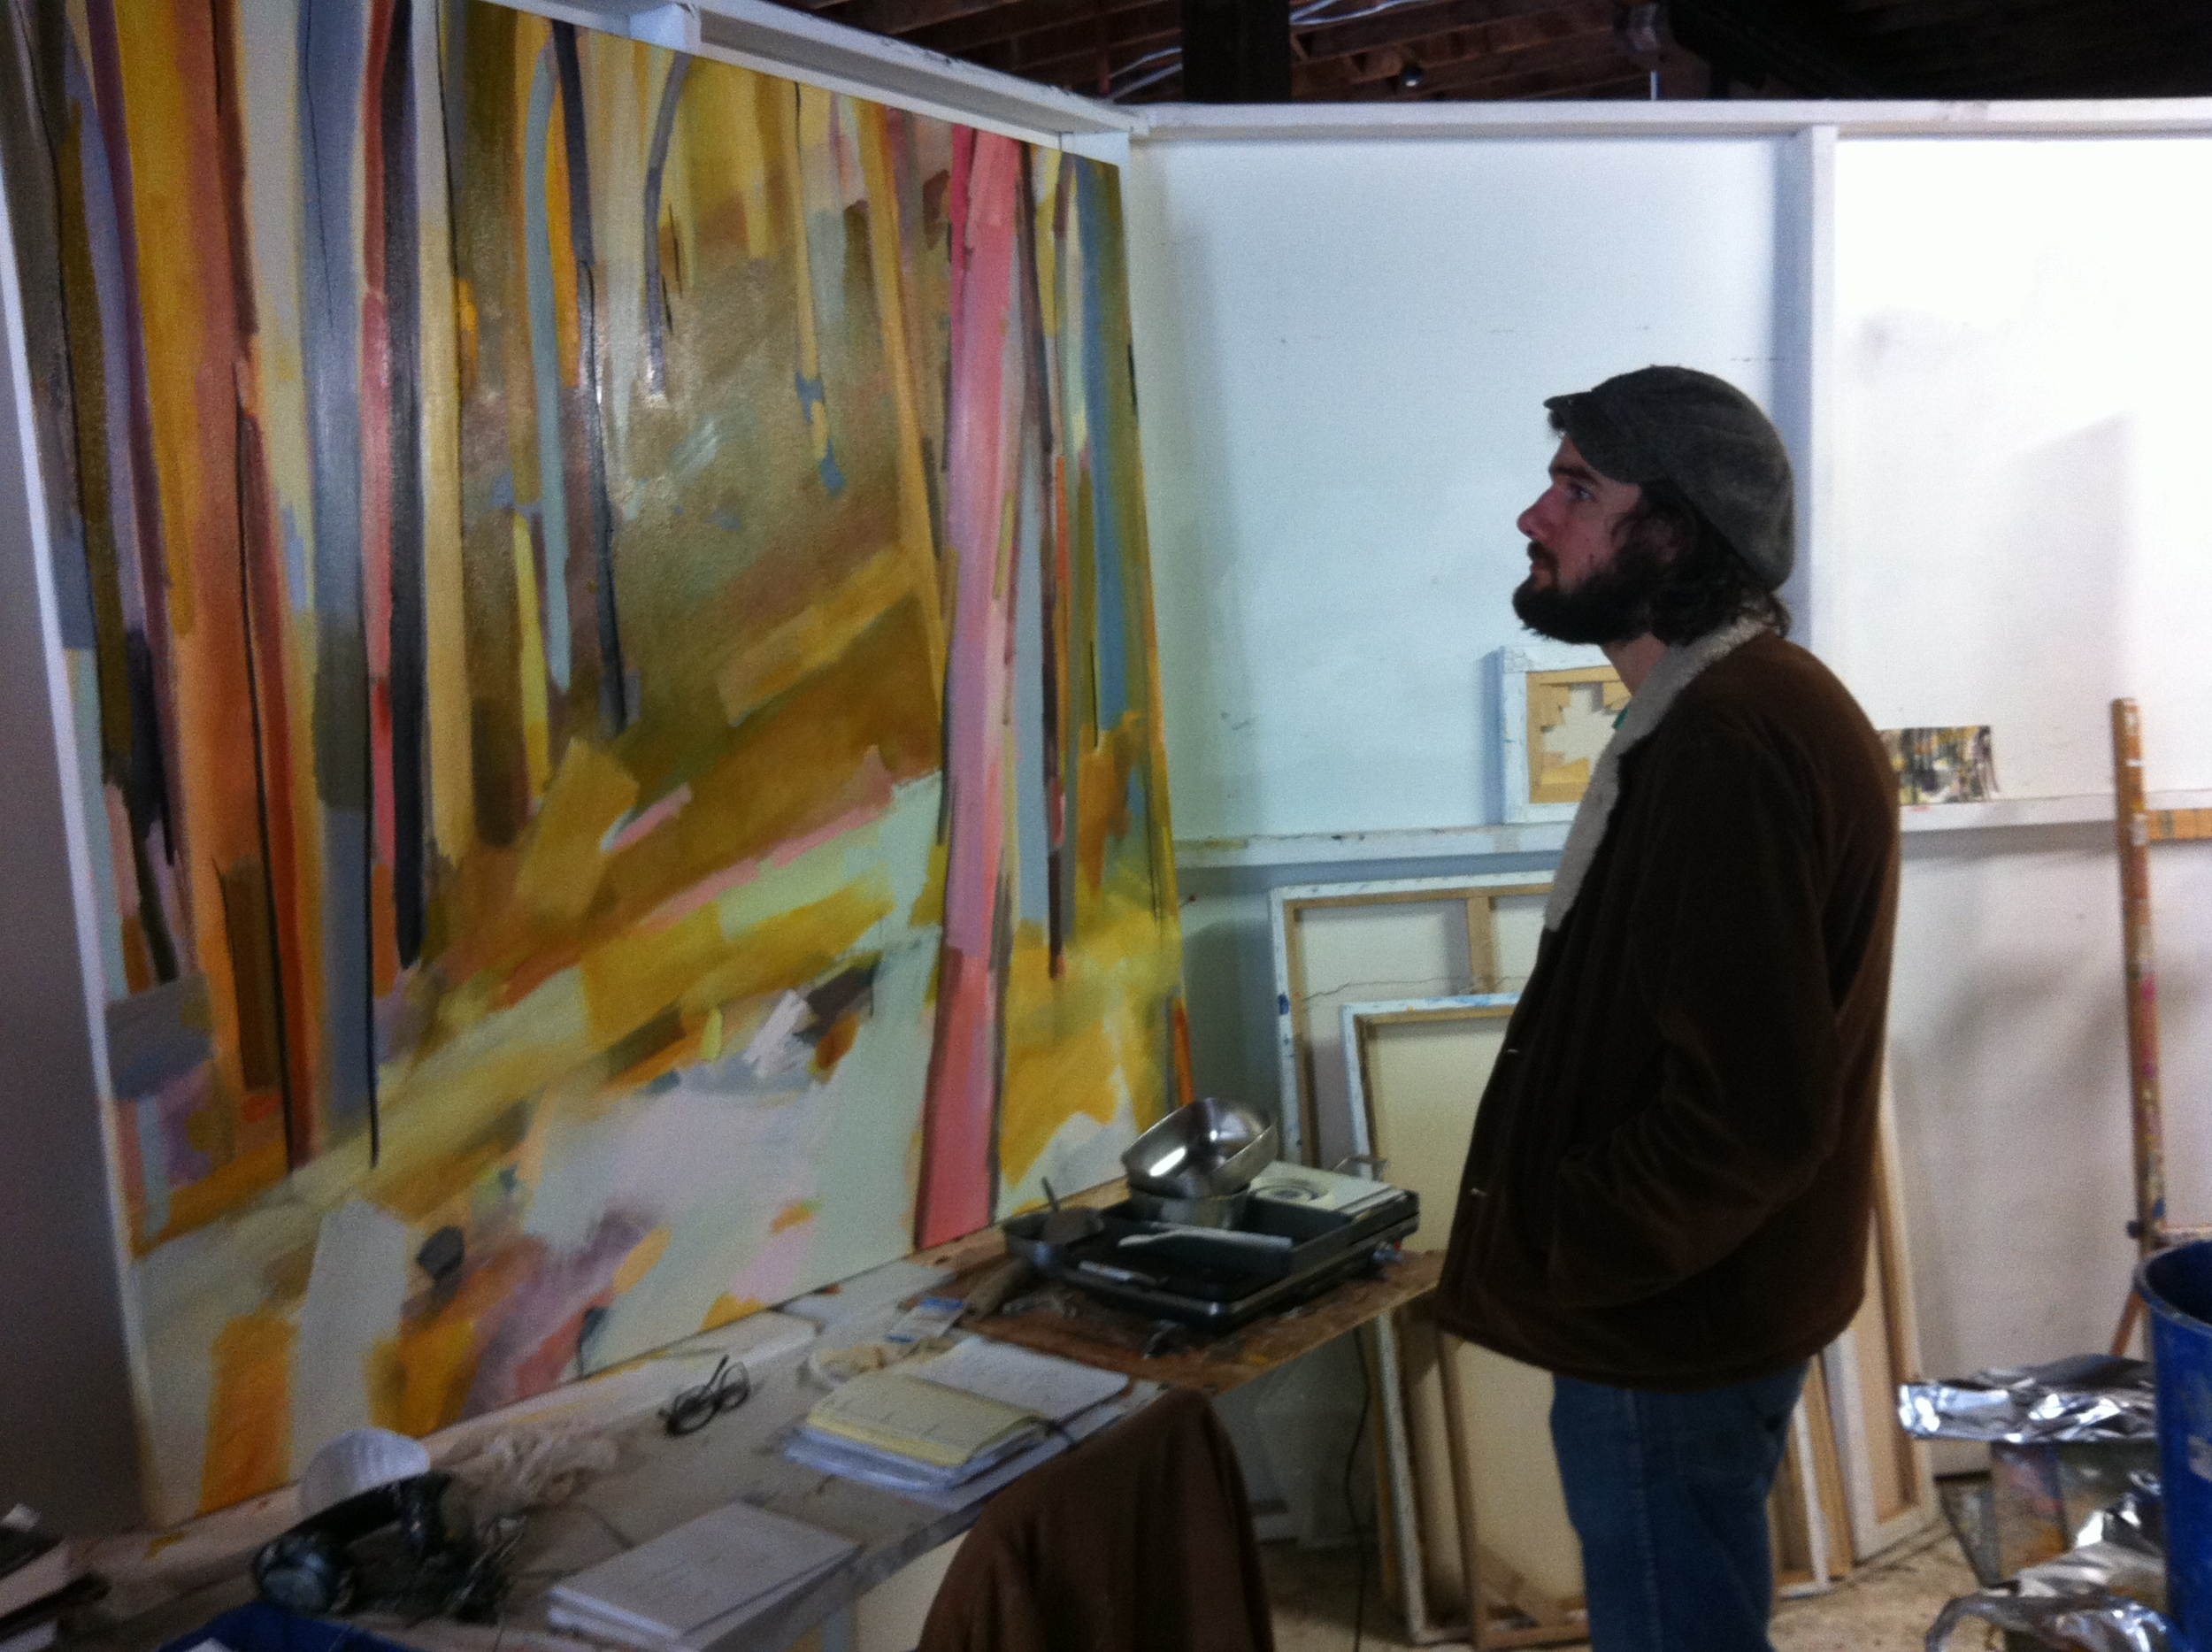 Jonathan Gaboary in the studio with oil painting